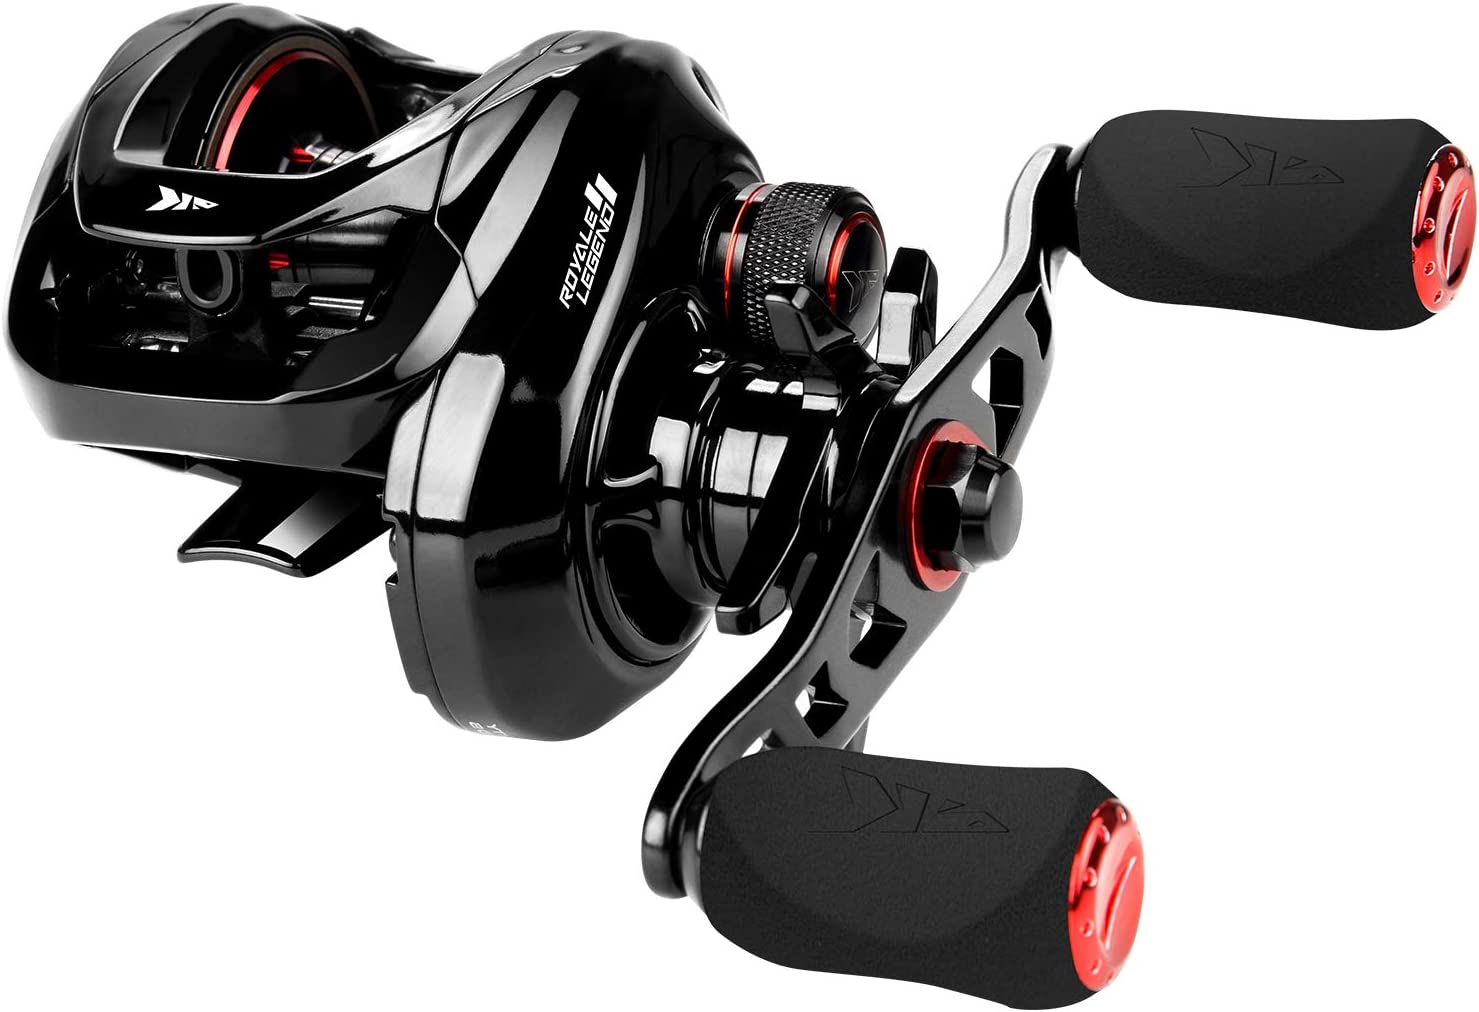 KastKing Royale Legend II Baitcasting Reel, New Compact Design Fishing Reel, Cross-Fire 8 Magnet Braking System, Available in 5.4:1 and 7.2:1 Gear Ratios